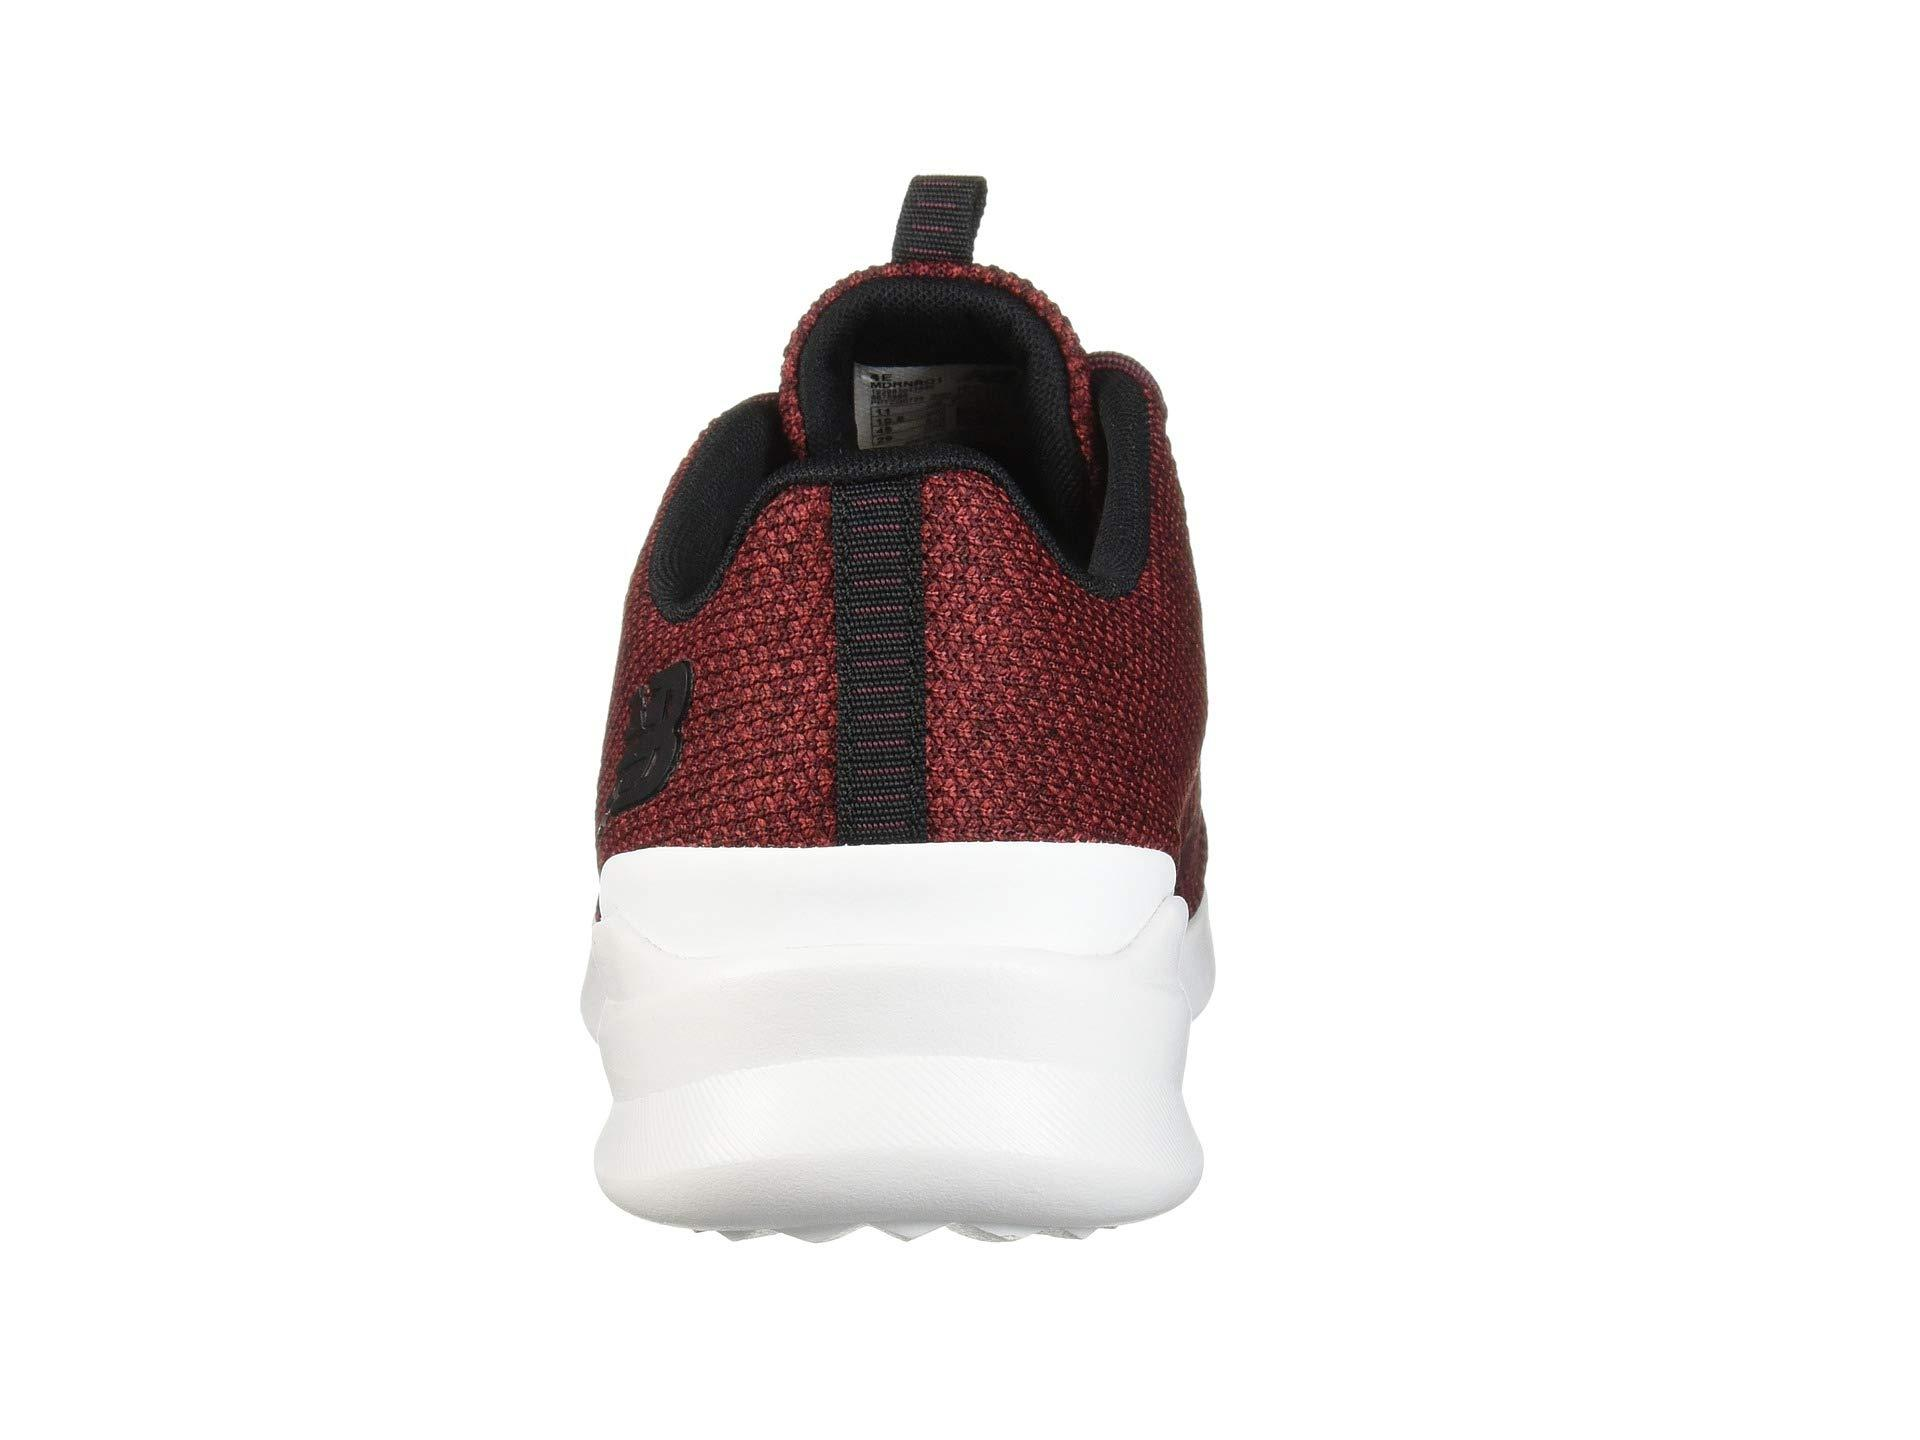 Running Shoes in nb Burgundy